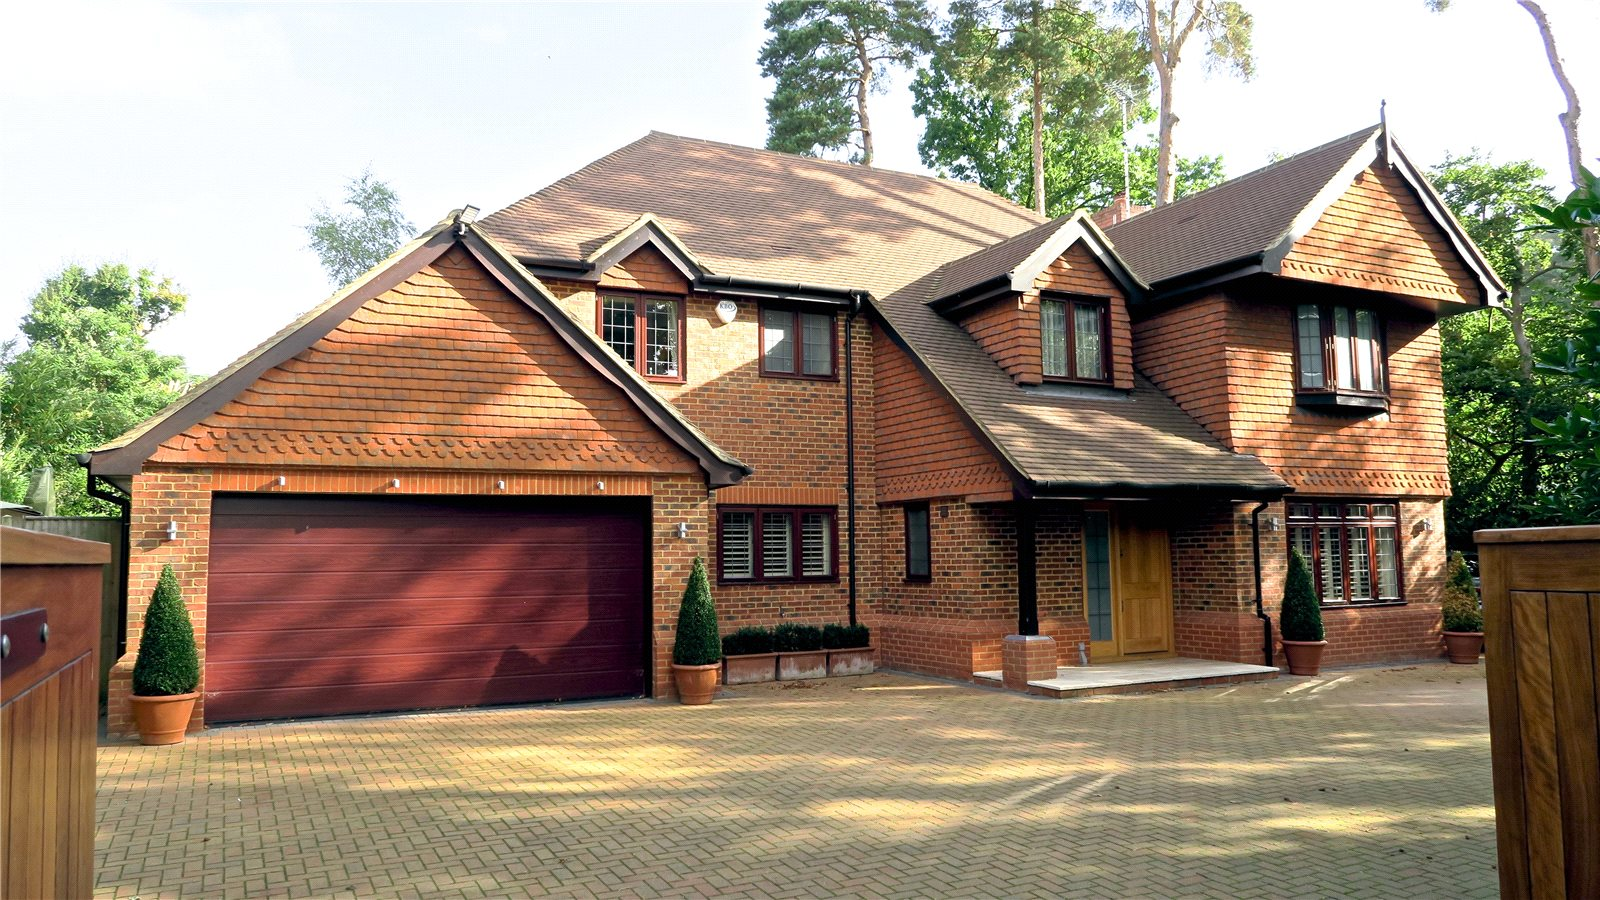 Moradia para Venda às Woodlands Lane, Windlesham, Surrey, GU20 Windlesham, Inglaterra